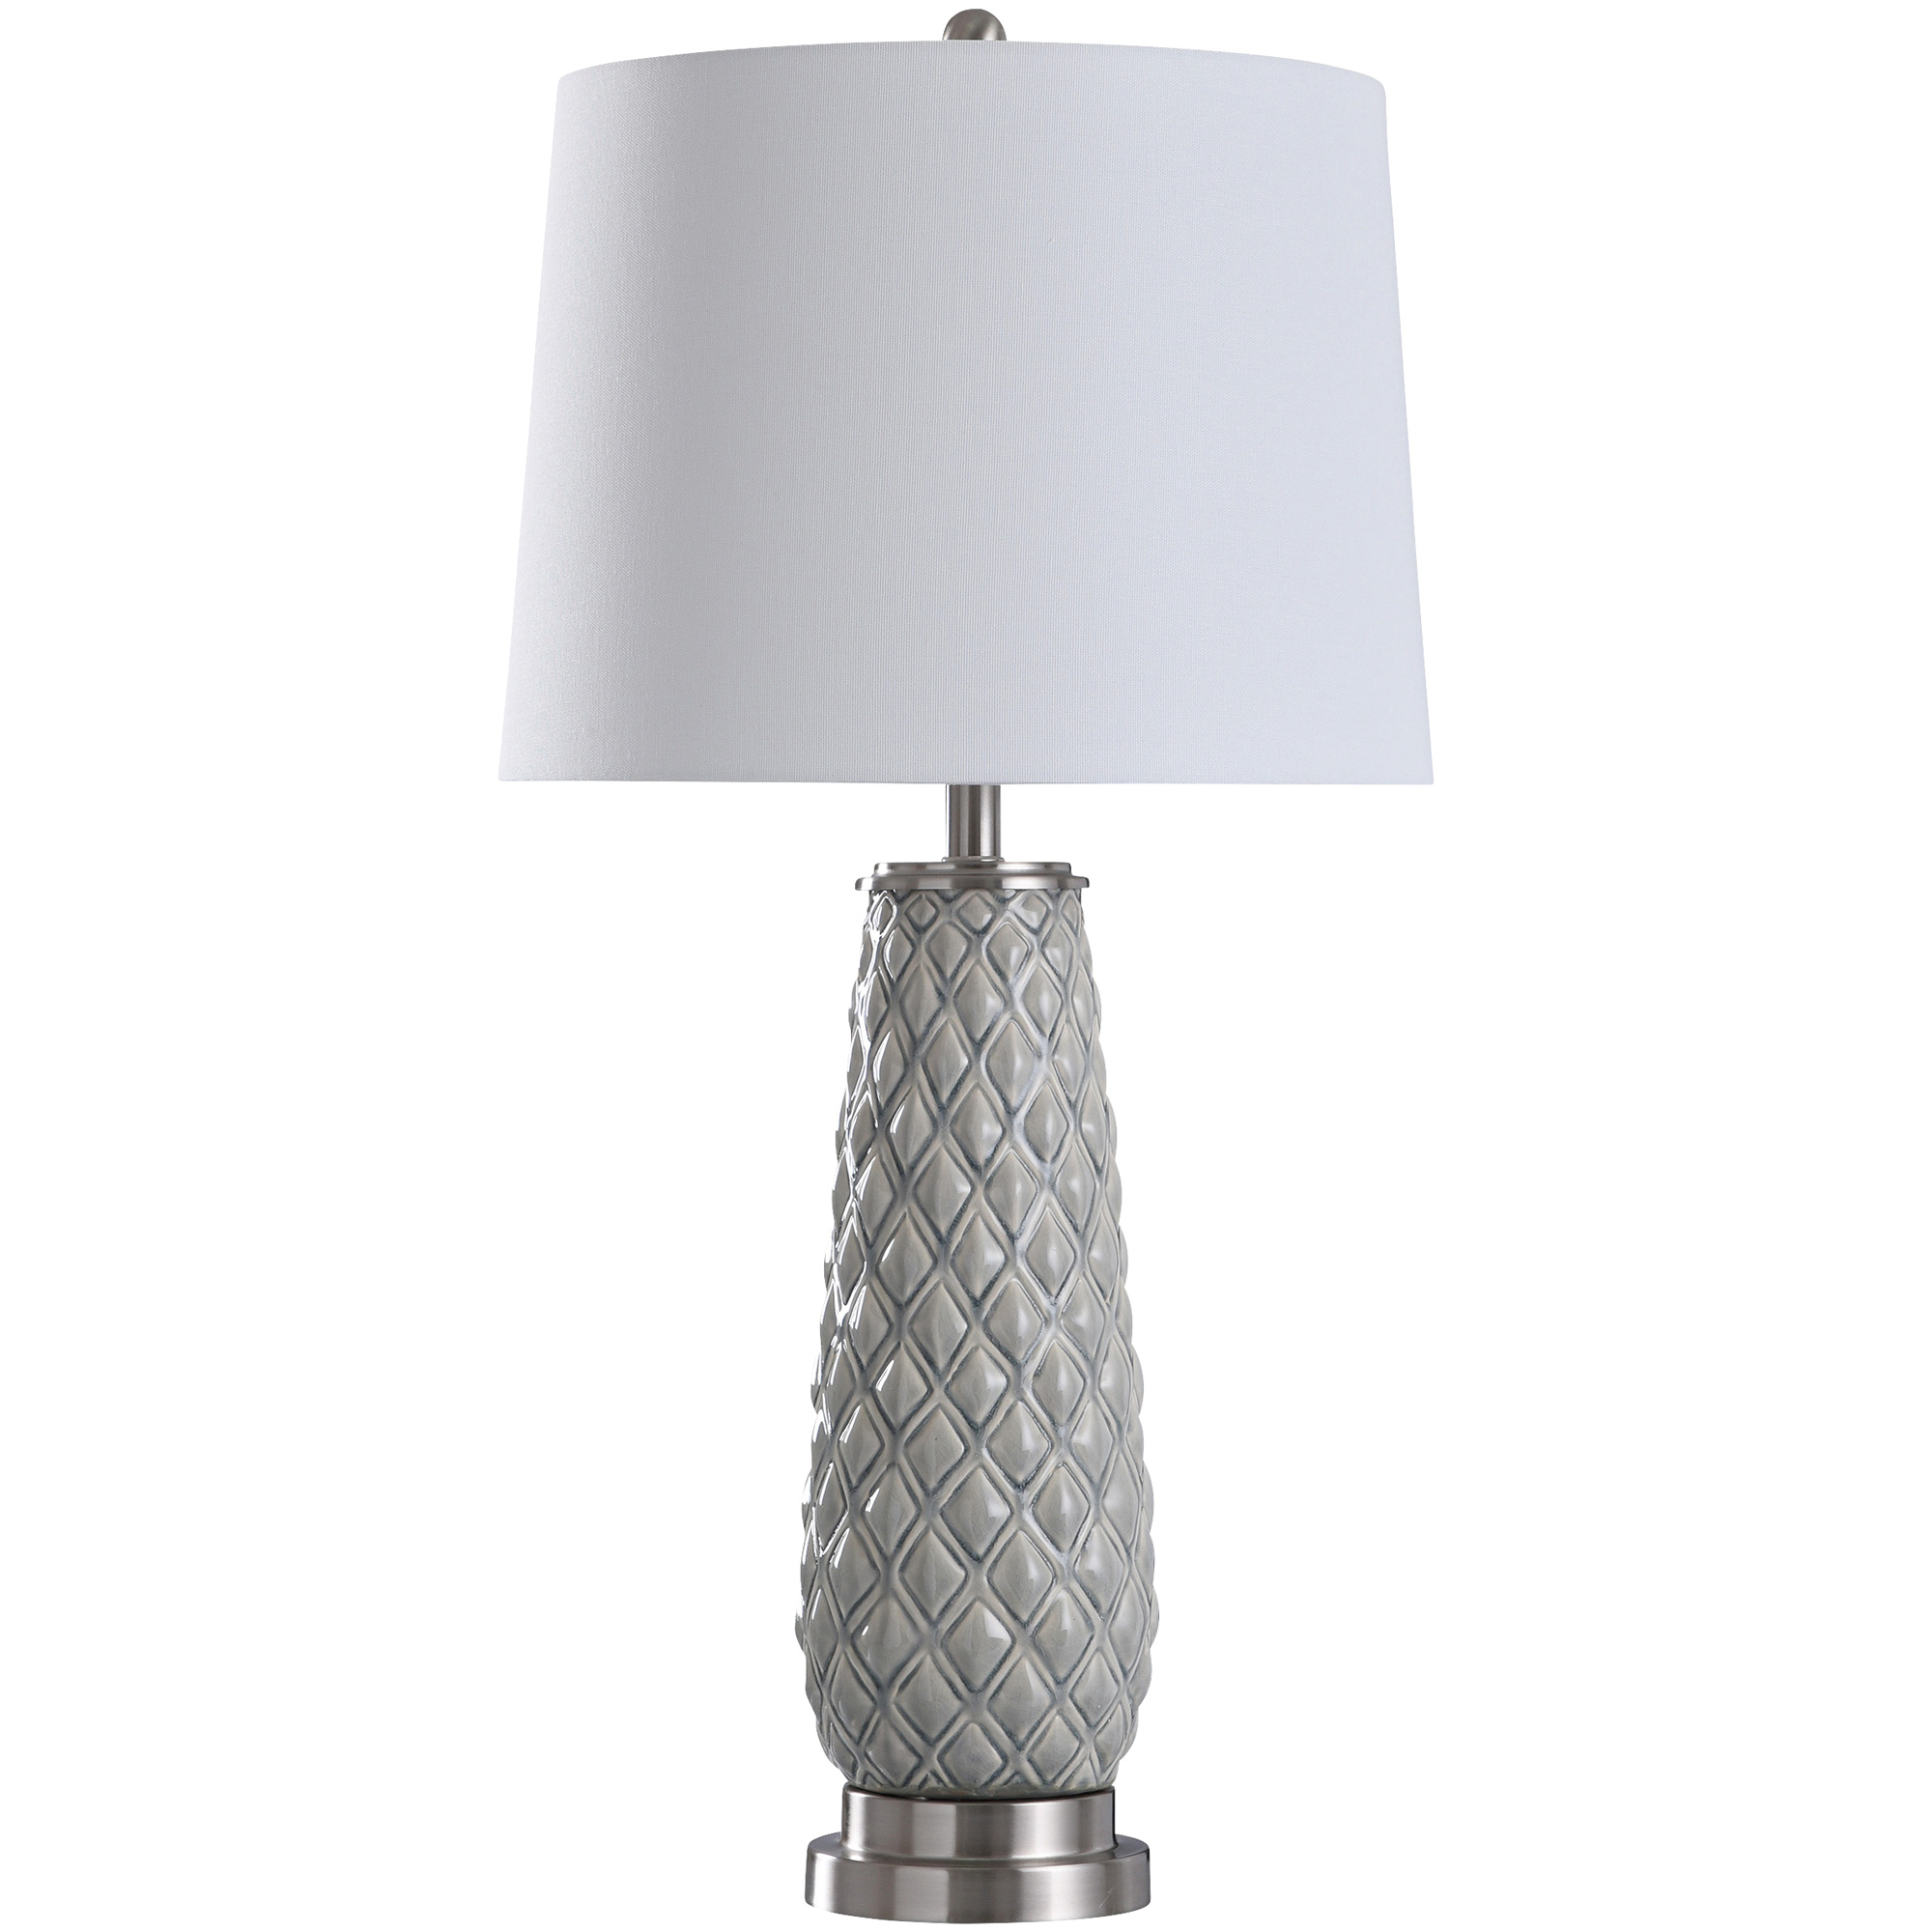 Stylecraft Home Collection | Hanson Sky Ceramic Table Lamp